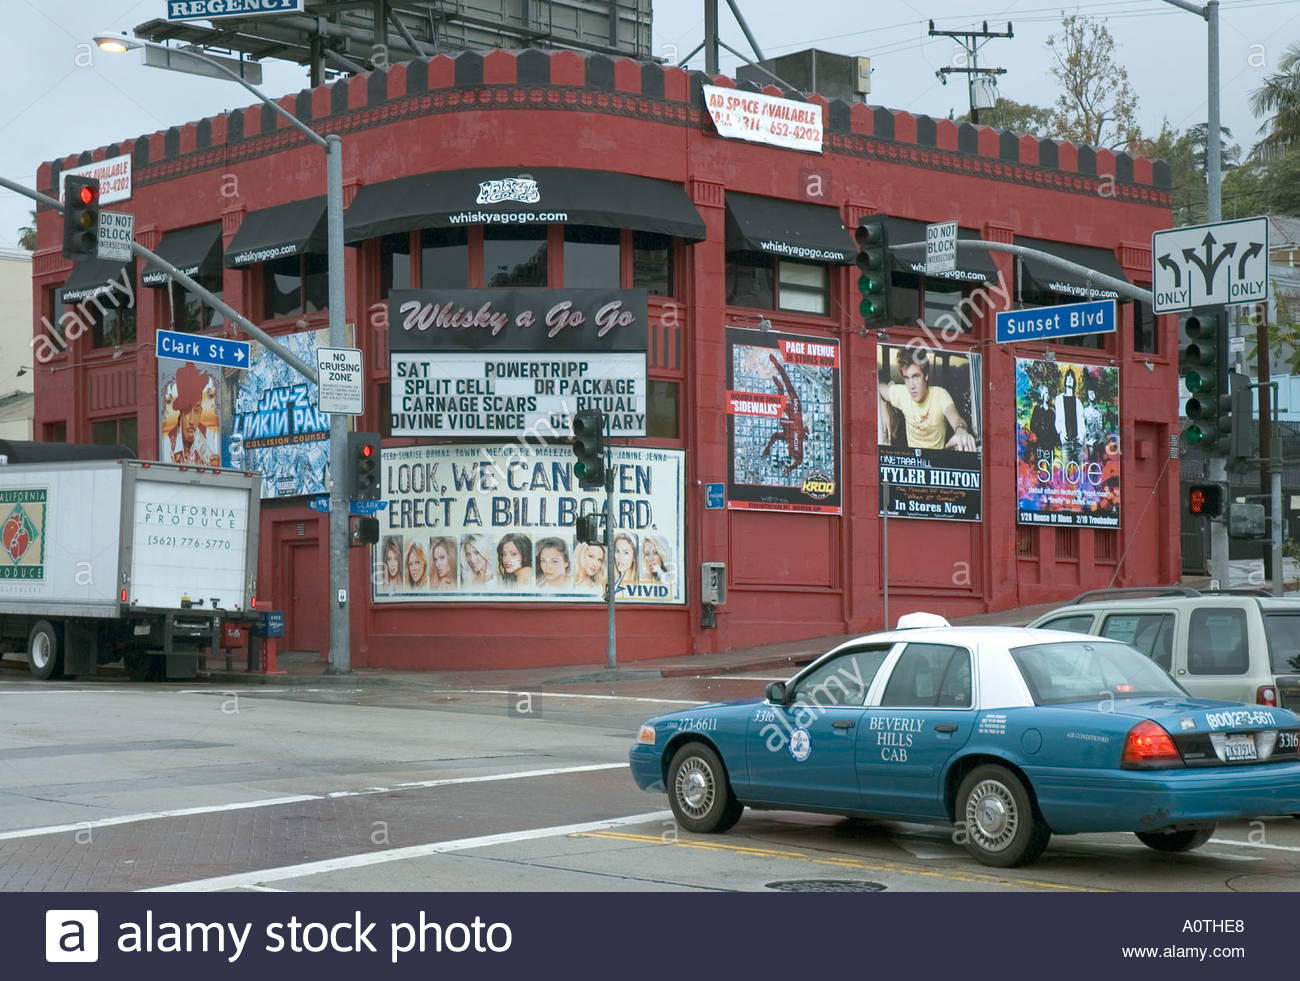 The Whiskey A Go Go Music Venue On Sunset Boulevard In West With Whiskey A Go Go Schedule